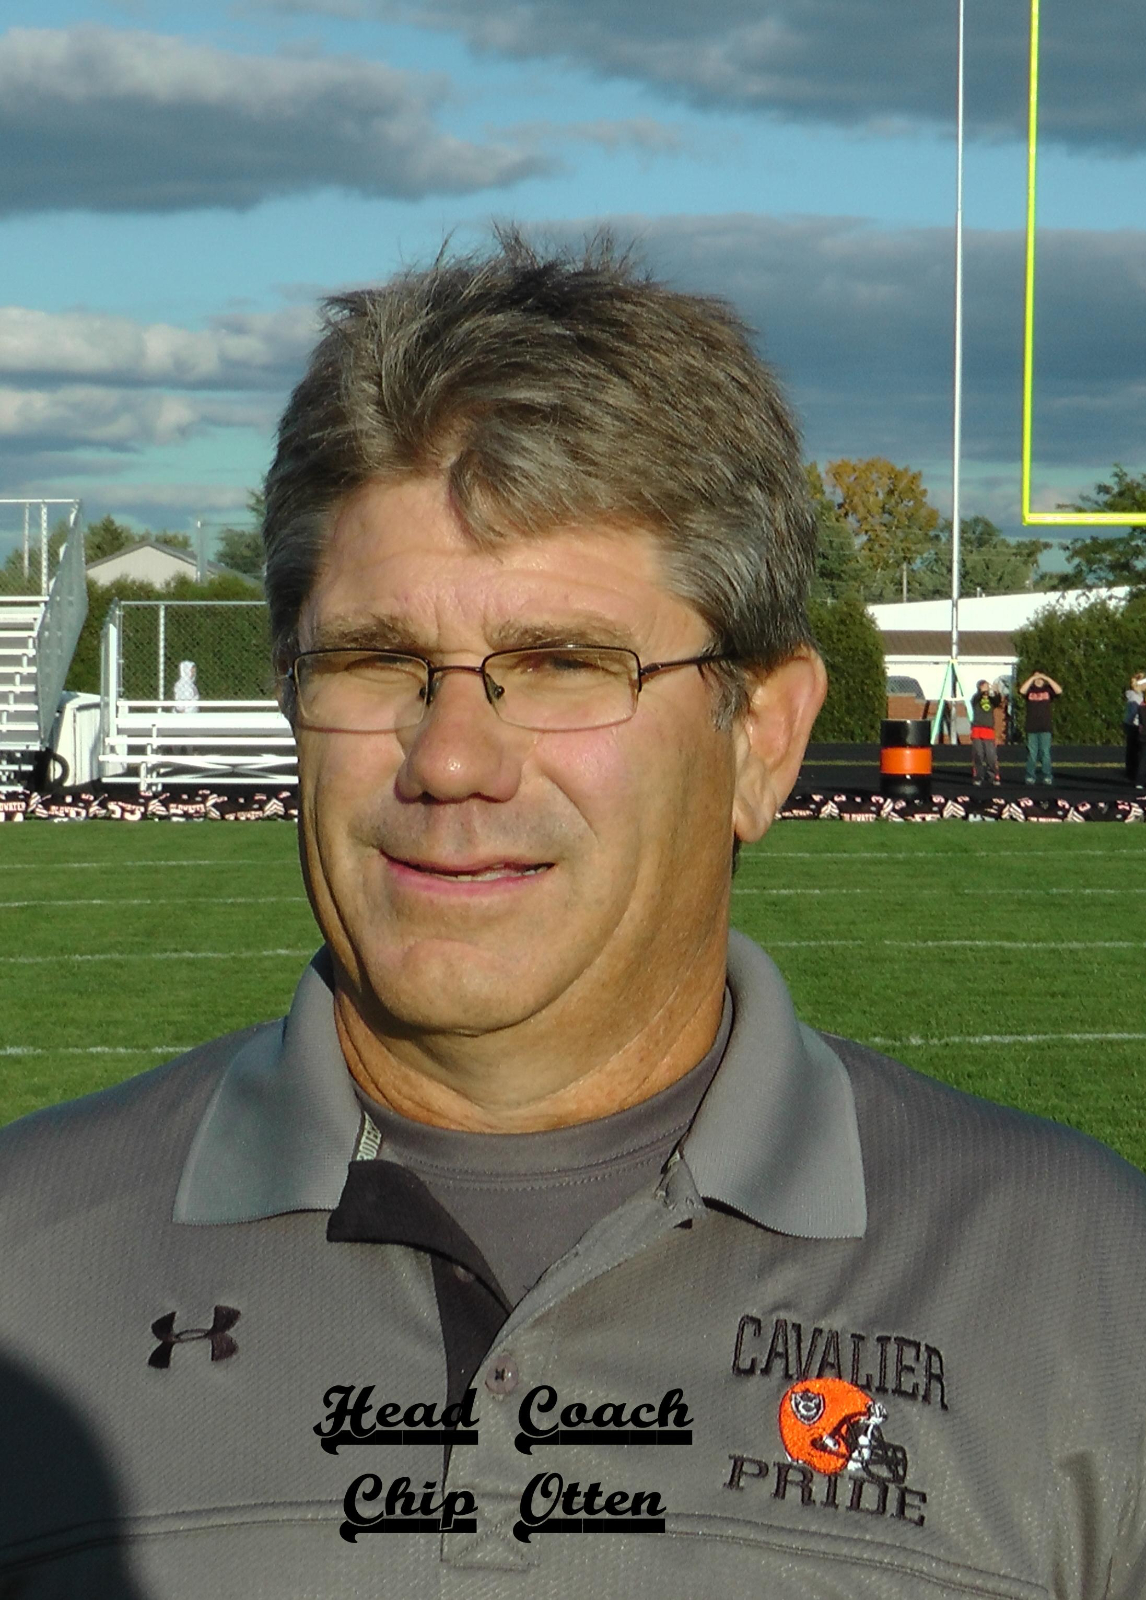 Chip Otten named to the Ohio High School Football Coaches Hall of Fame